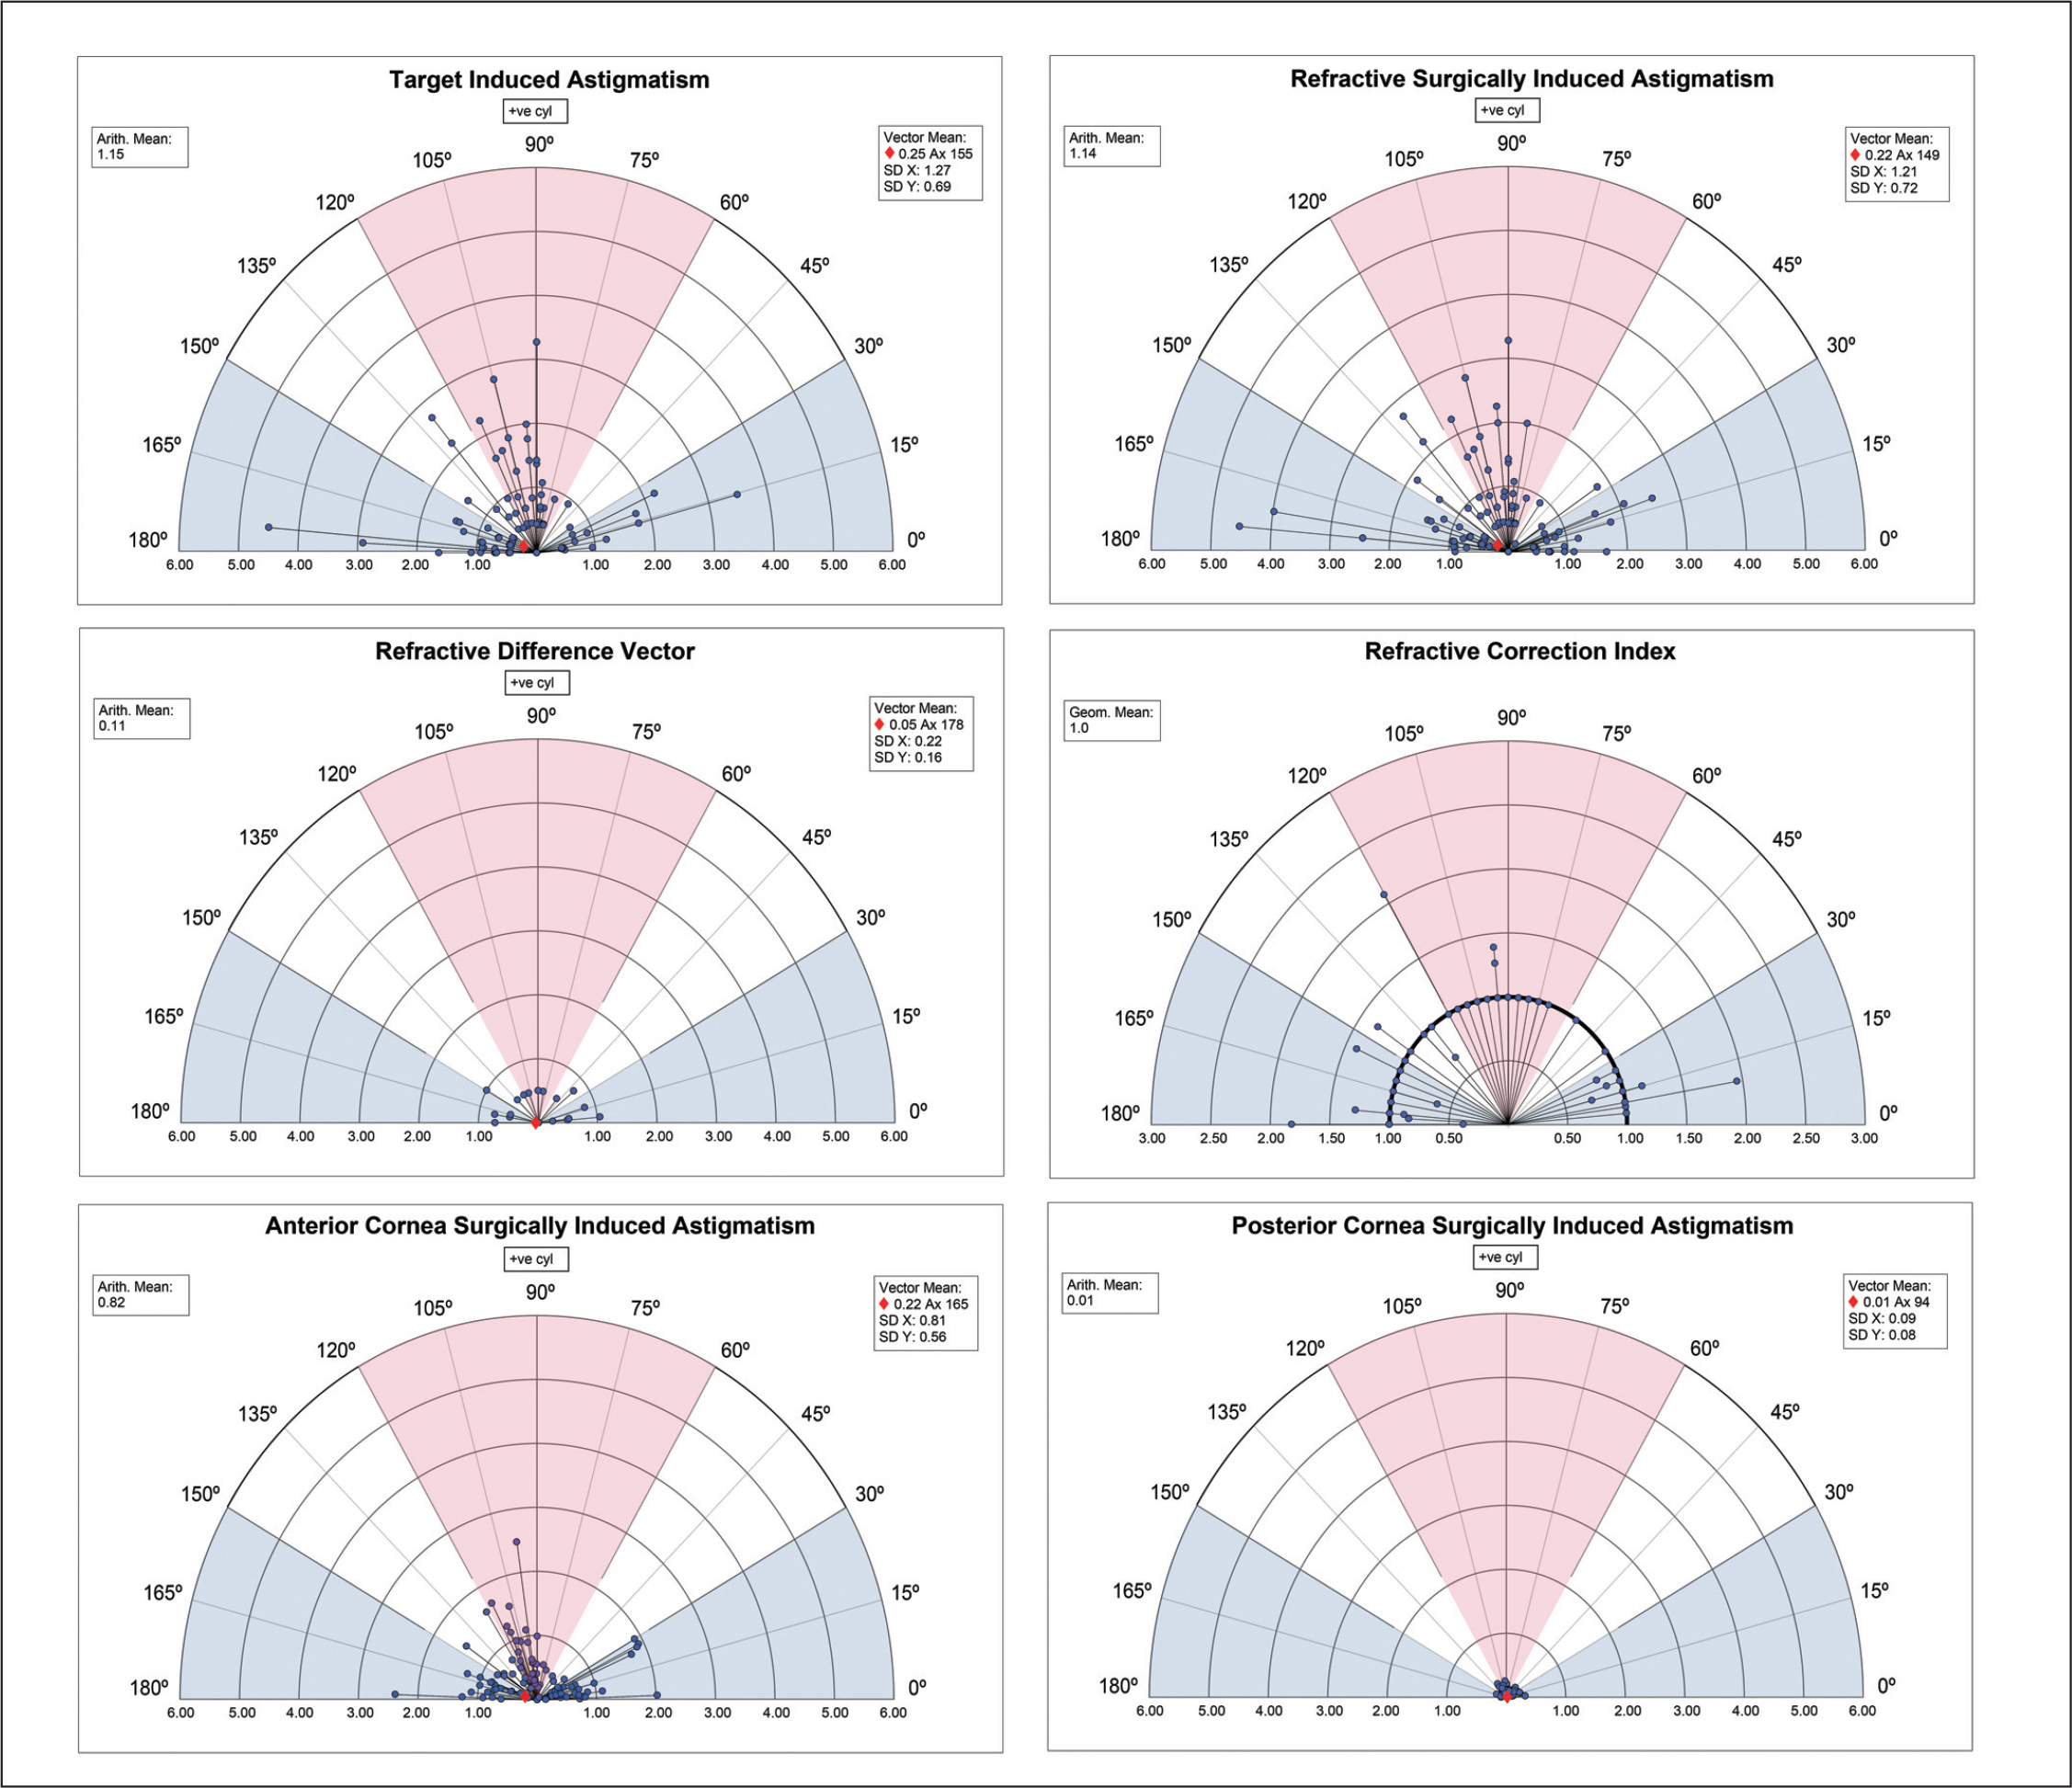 Standard single plots for reporting the target induced astigmatism vector (top left), the refractive surgically induced astigmatism vector (top right), the refractive difference vector (middle left), and the refractive correction index (middle right). Corneal surgically induced astigmatism is also represented for anterior cornea (bottom left) and posterior cornea (bottom right).